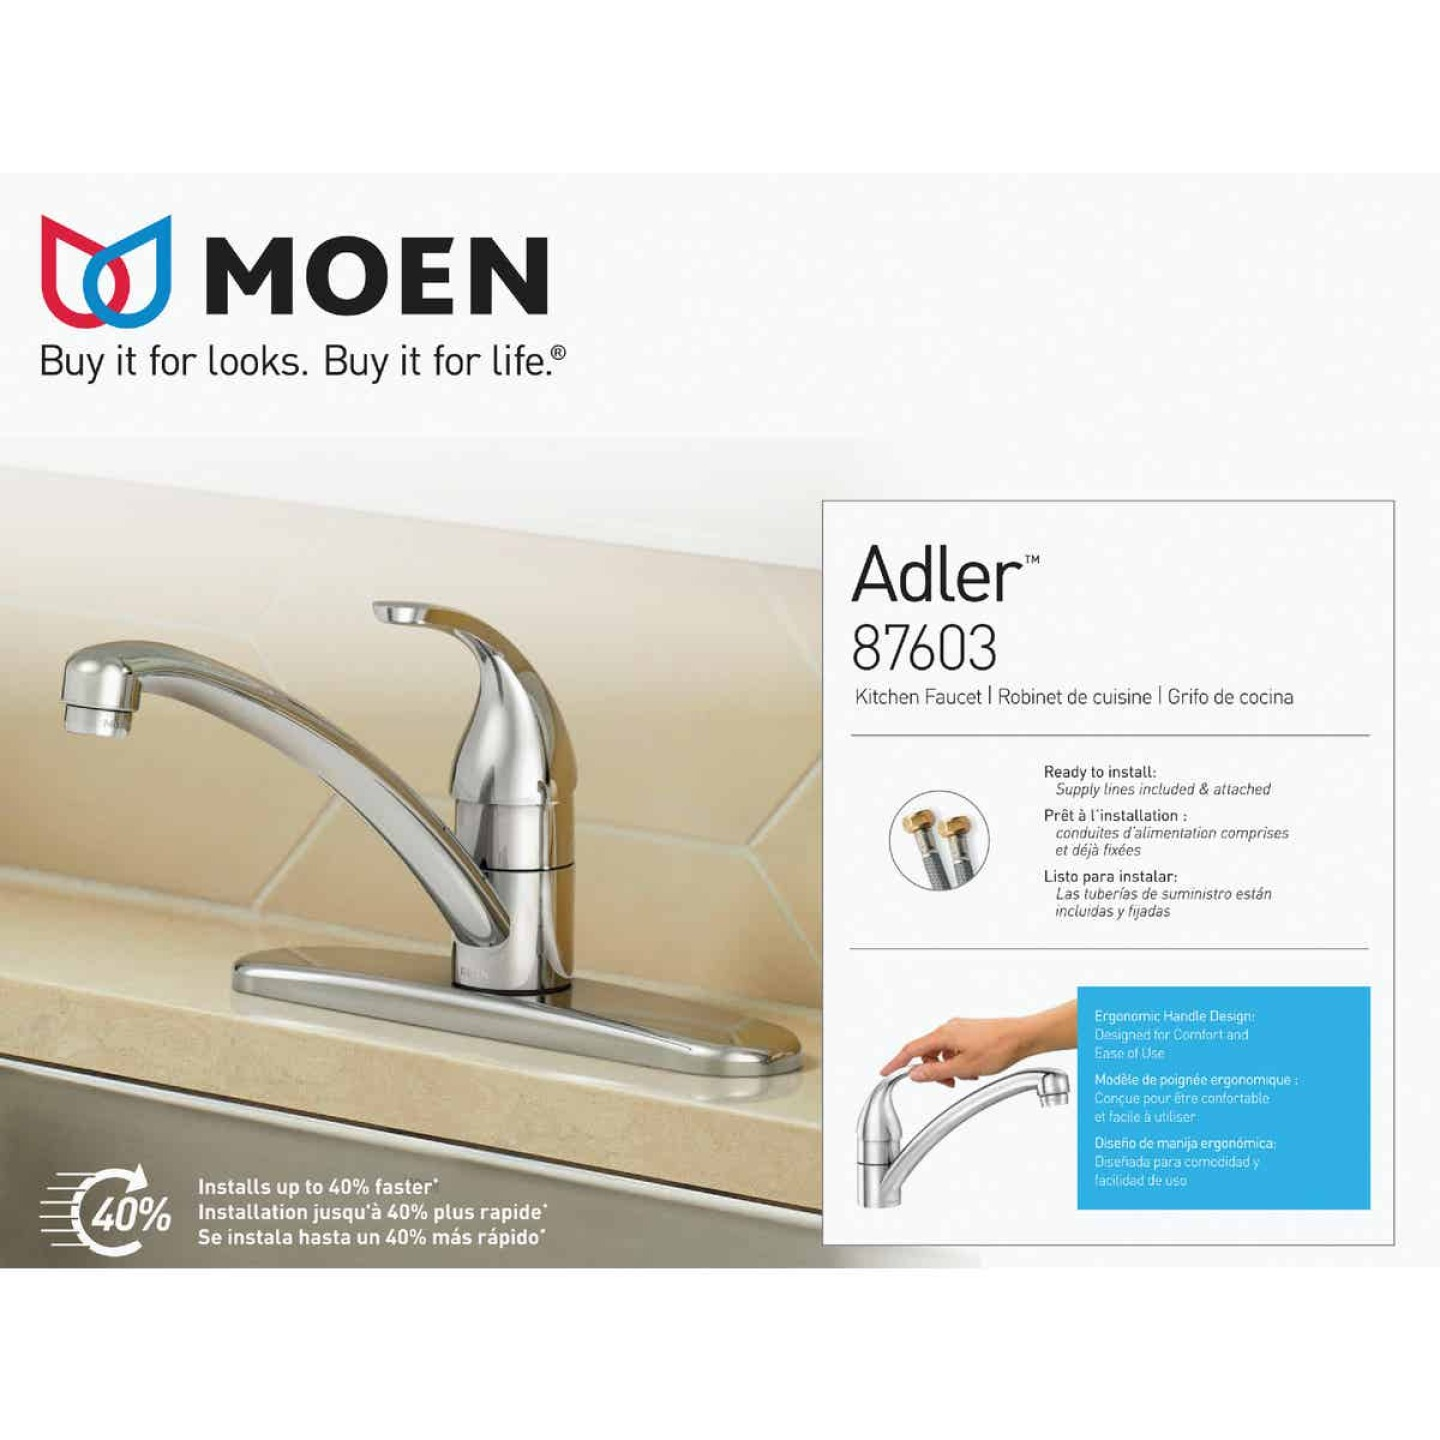 Moen Adler Single Handle Lever Kitchen Faucet, Chrome Image 3